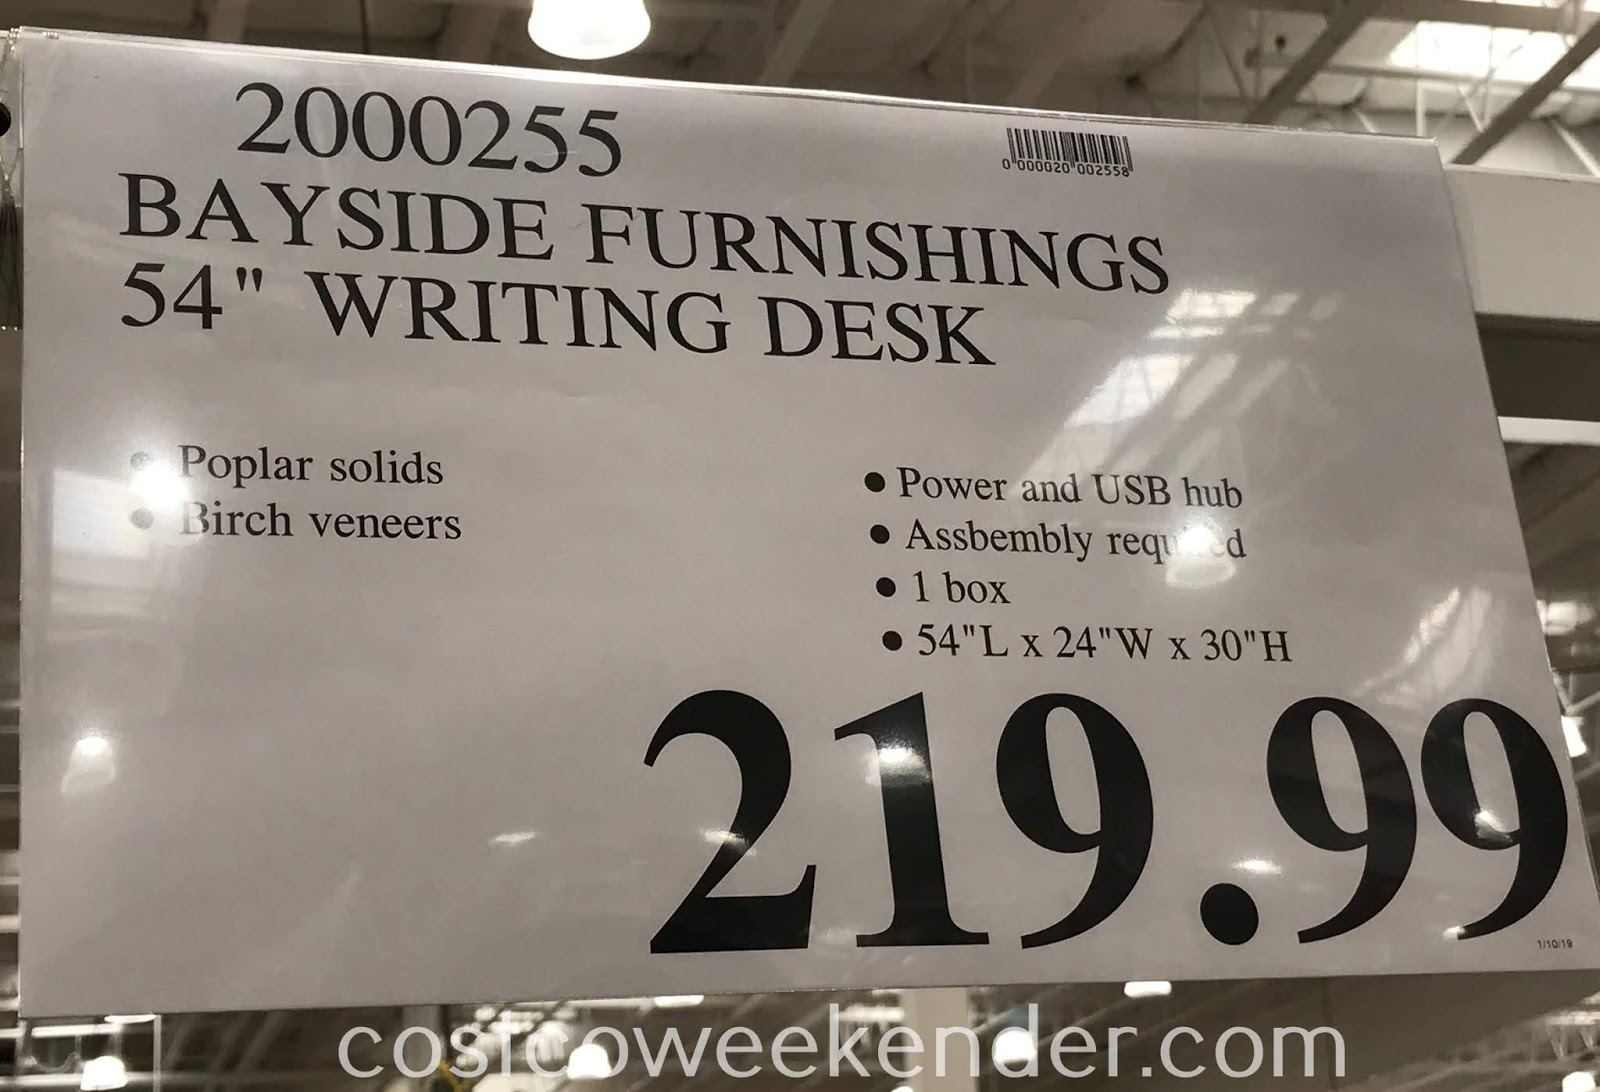 Deal for the Bayside Furnishings by Whalen Writing Desk at Costco